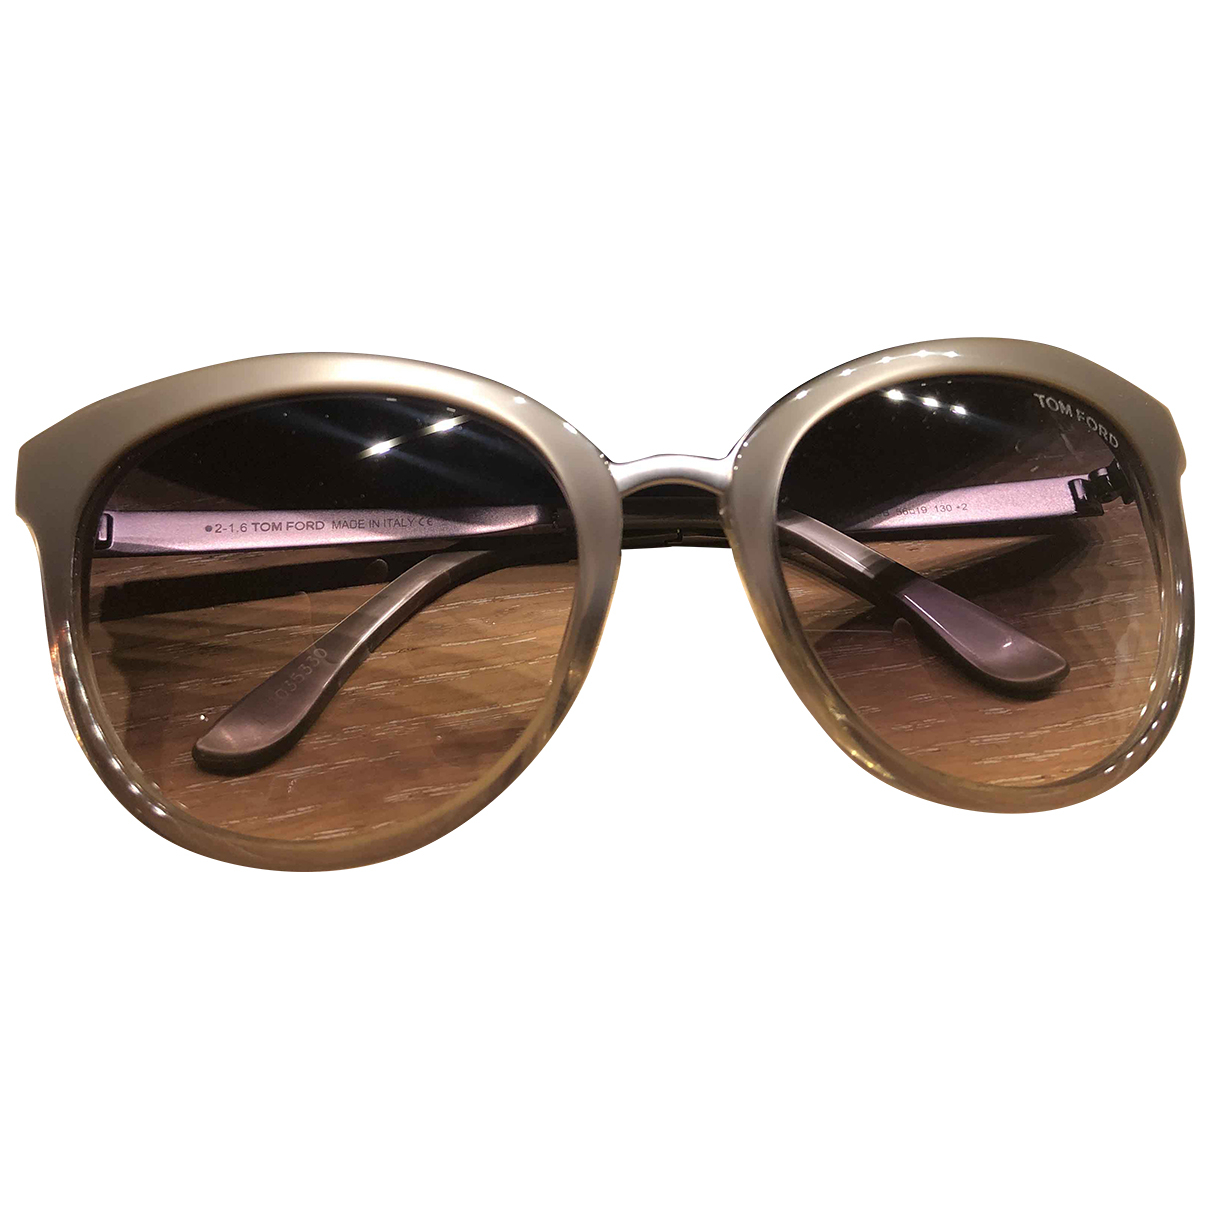 Tom Ford N Anthracite Sunglasses for Women